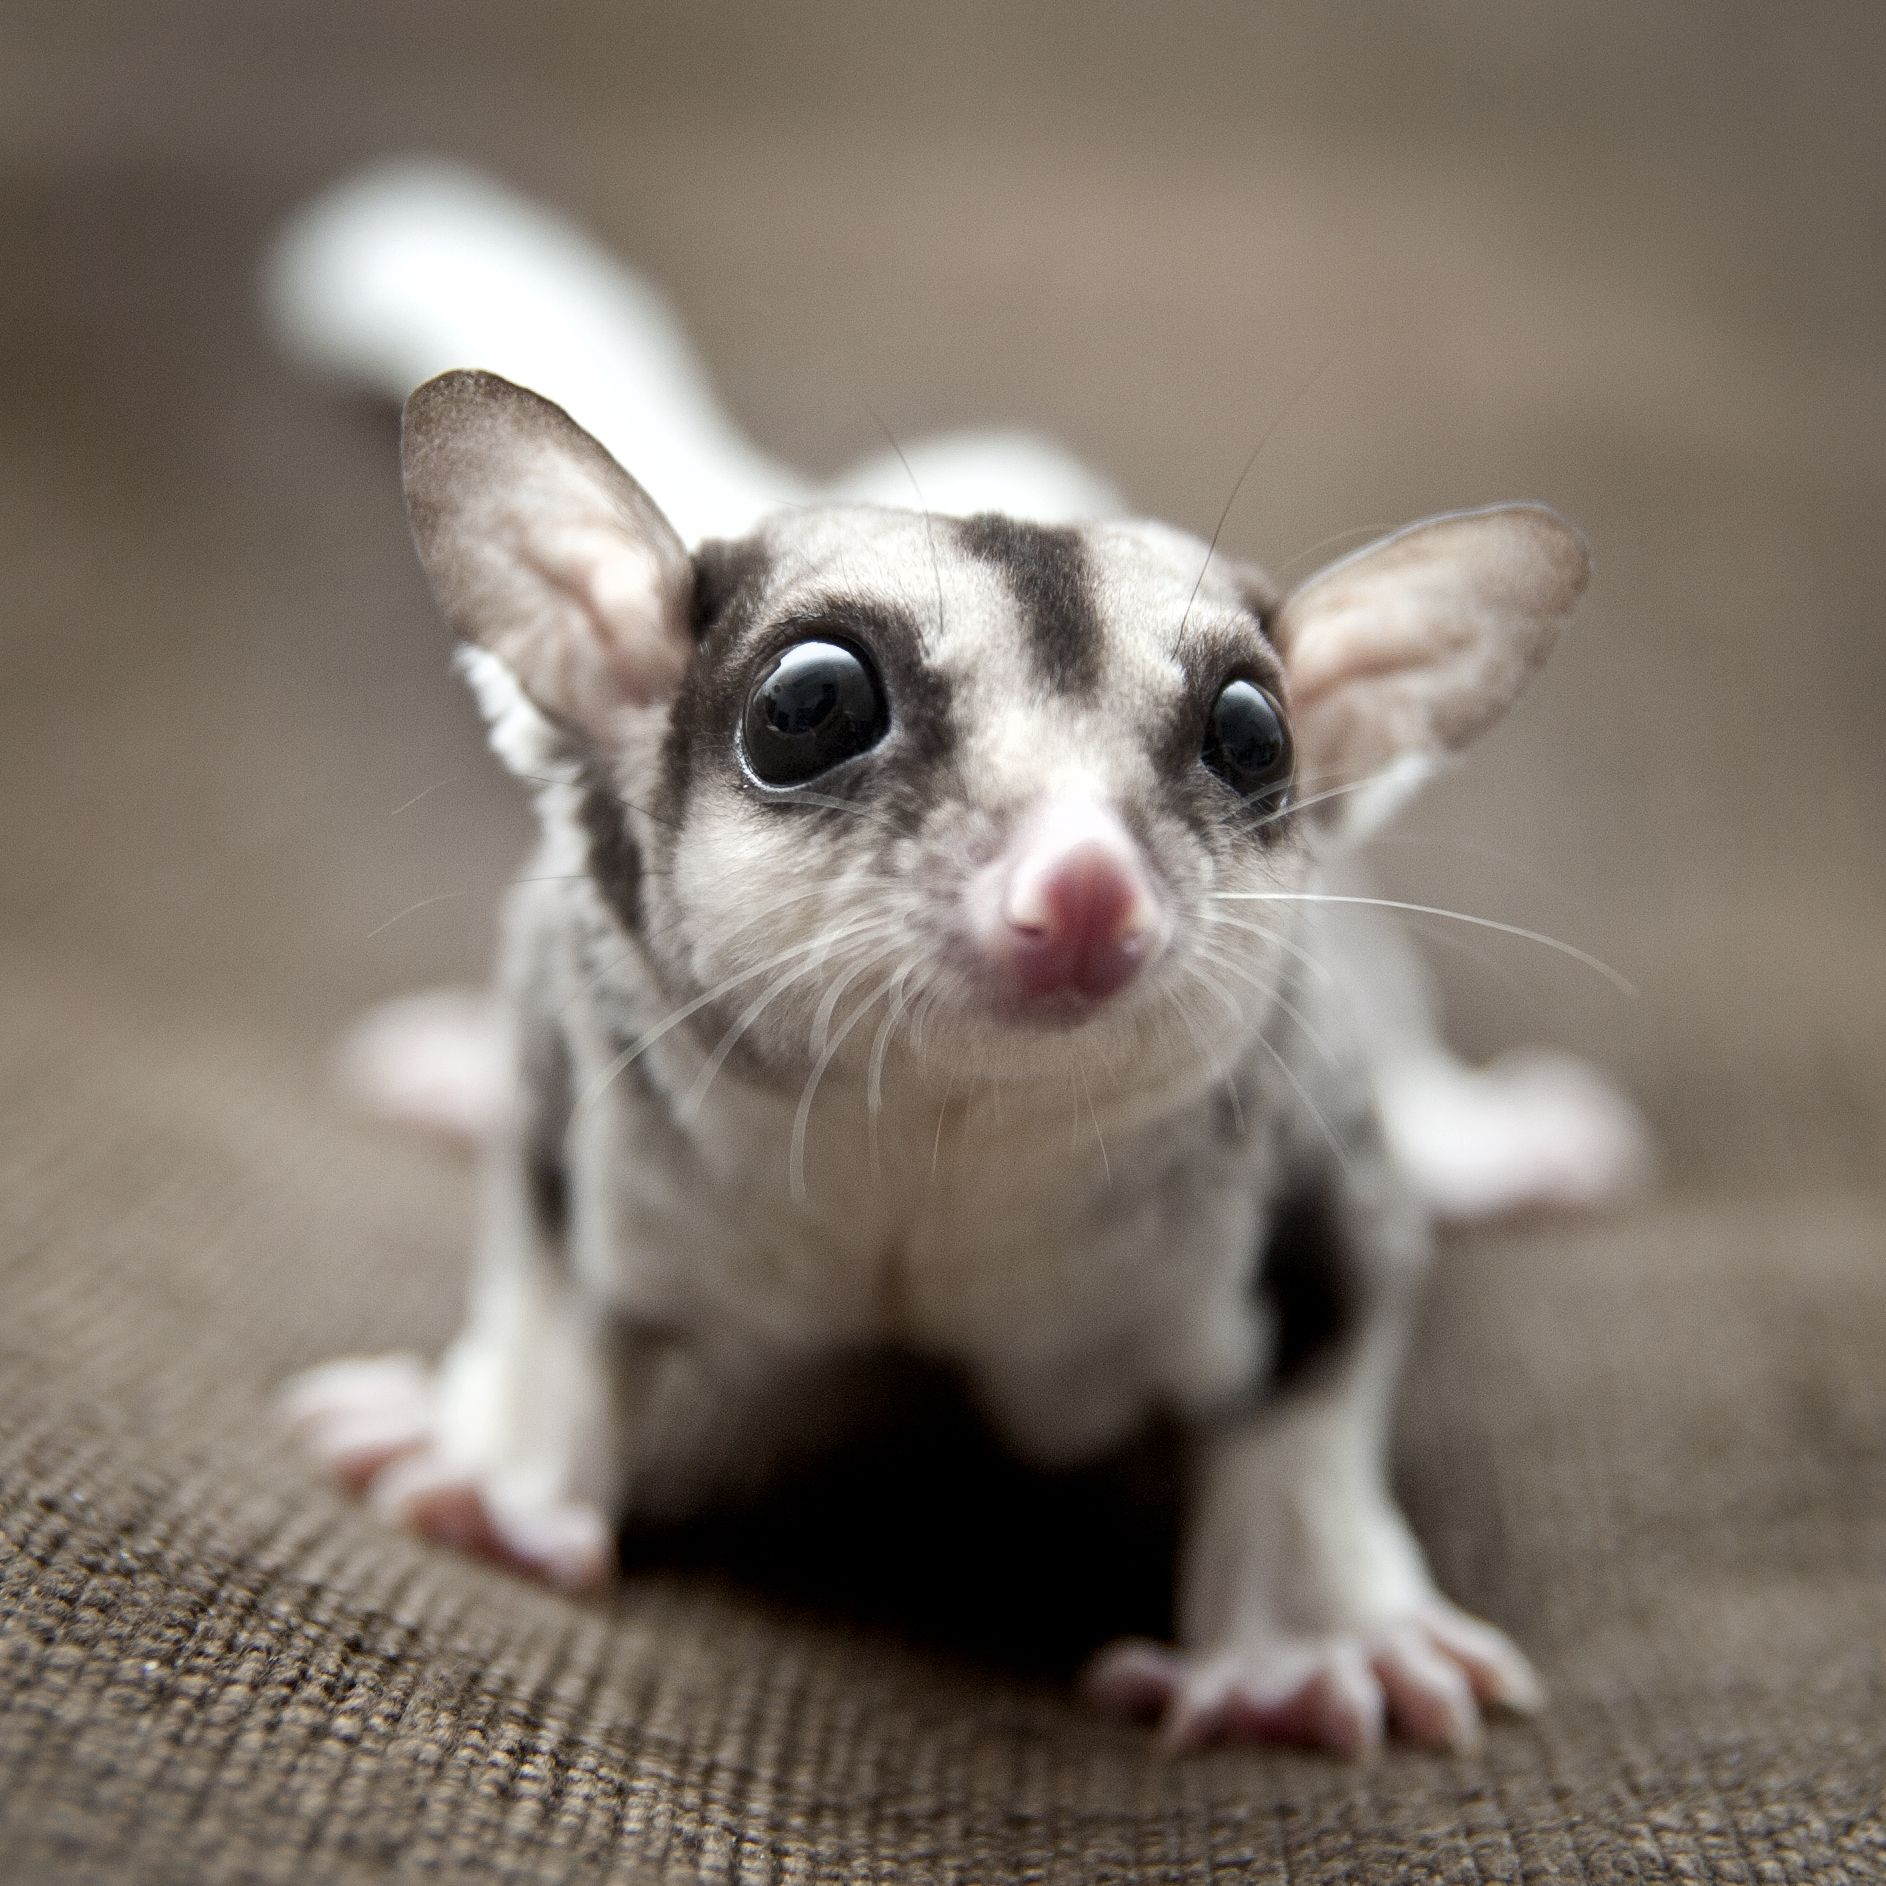 Boris the Sugar Glider 4 month old mosaic sugar glider | My Sugar ...